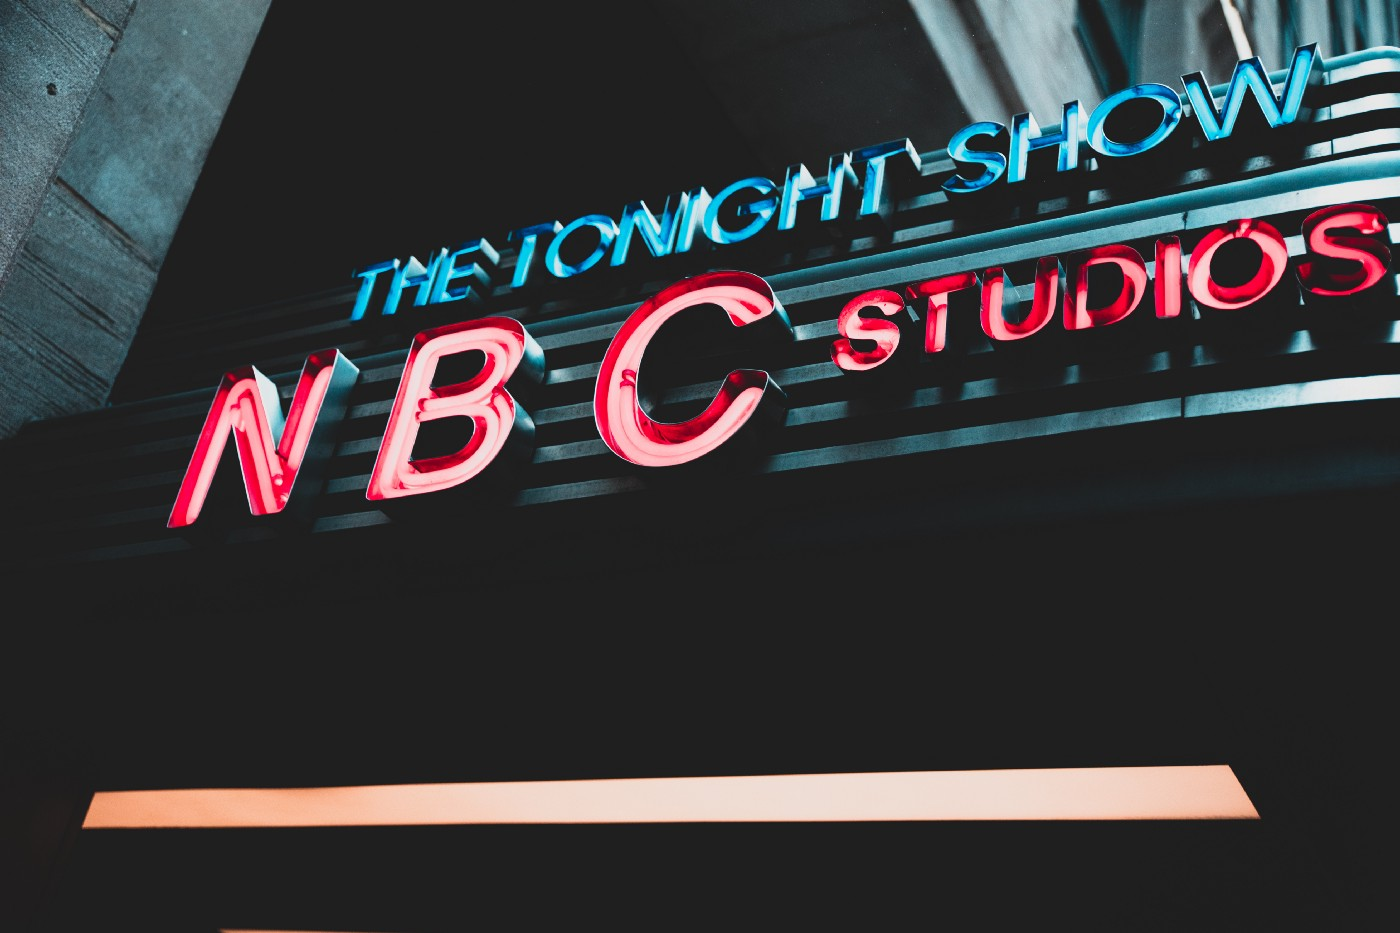 The sign for The Tonight Show studio.